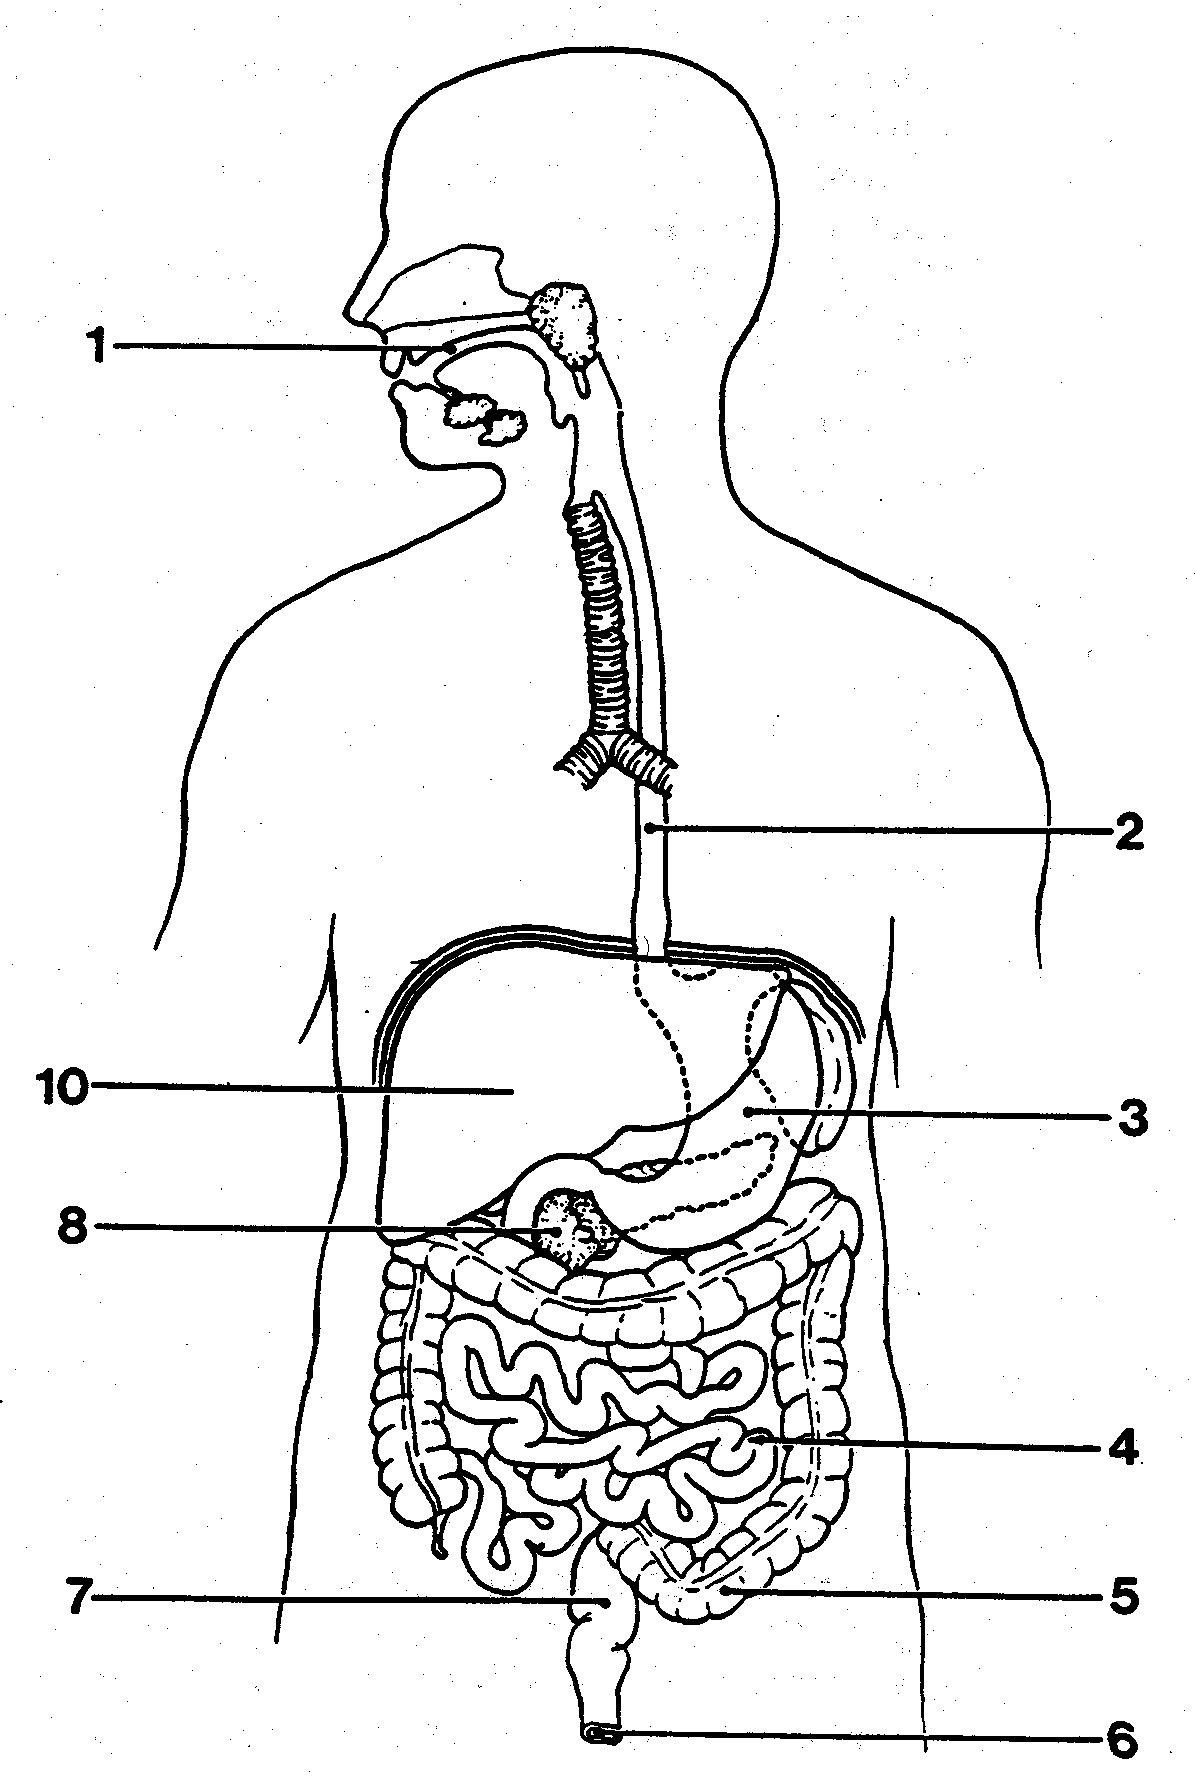 Digestive System Worksheets Middle School Best solutions Digestive System Worksheets Collections